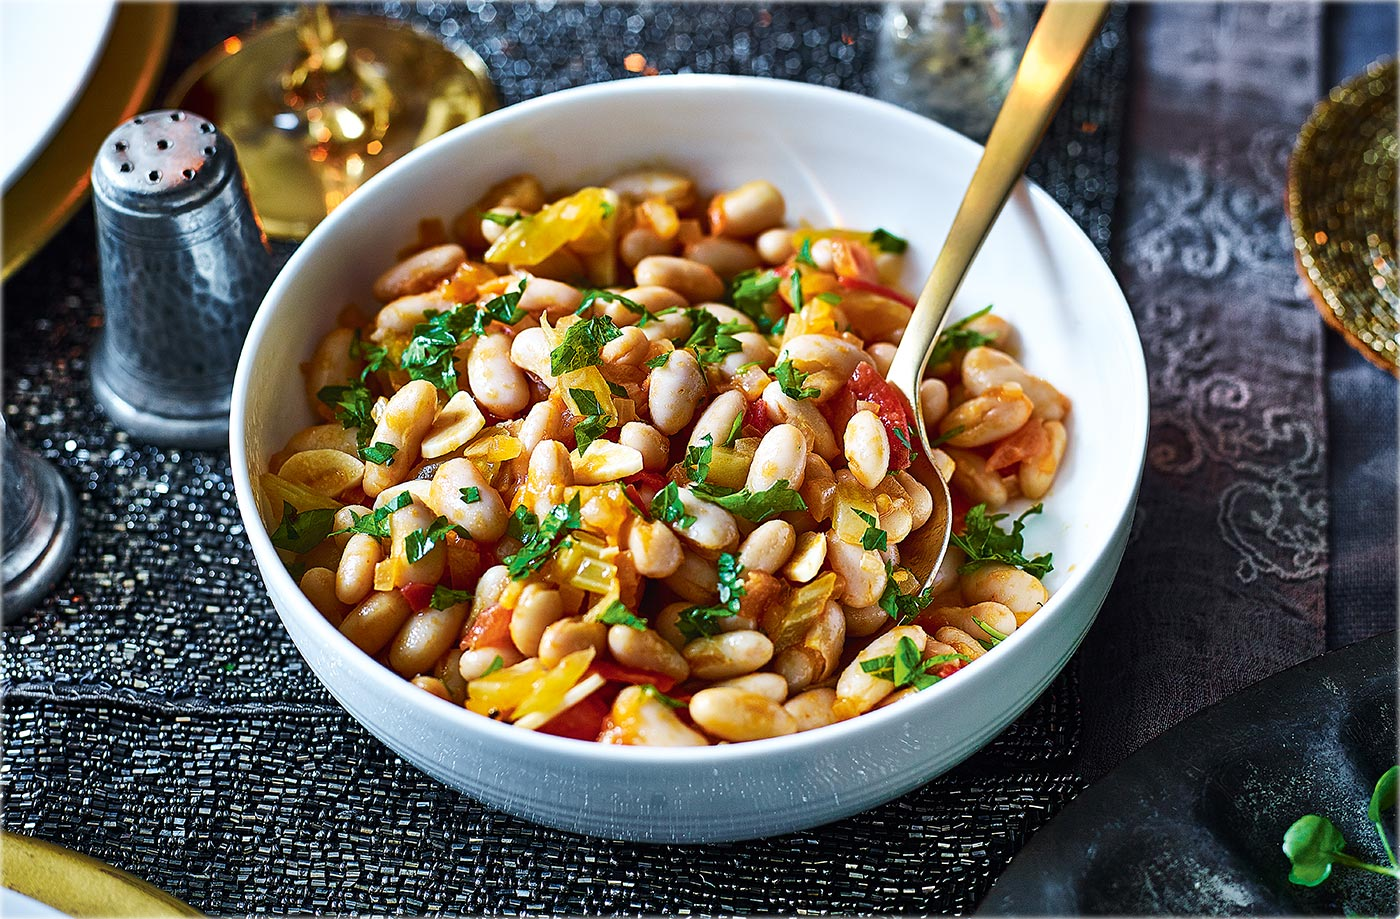 Cannellini beans with rosemary and garlic recipe